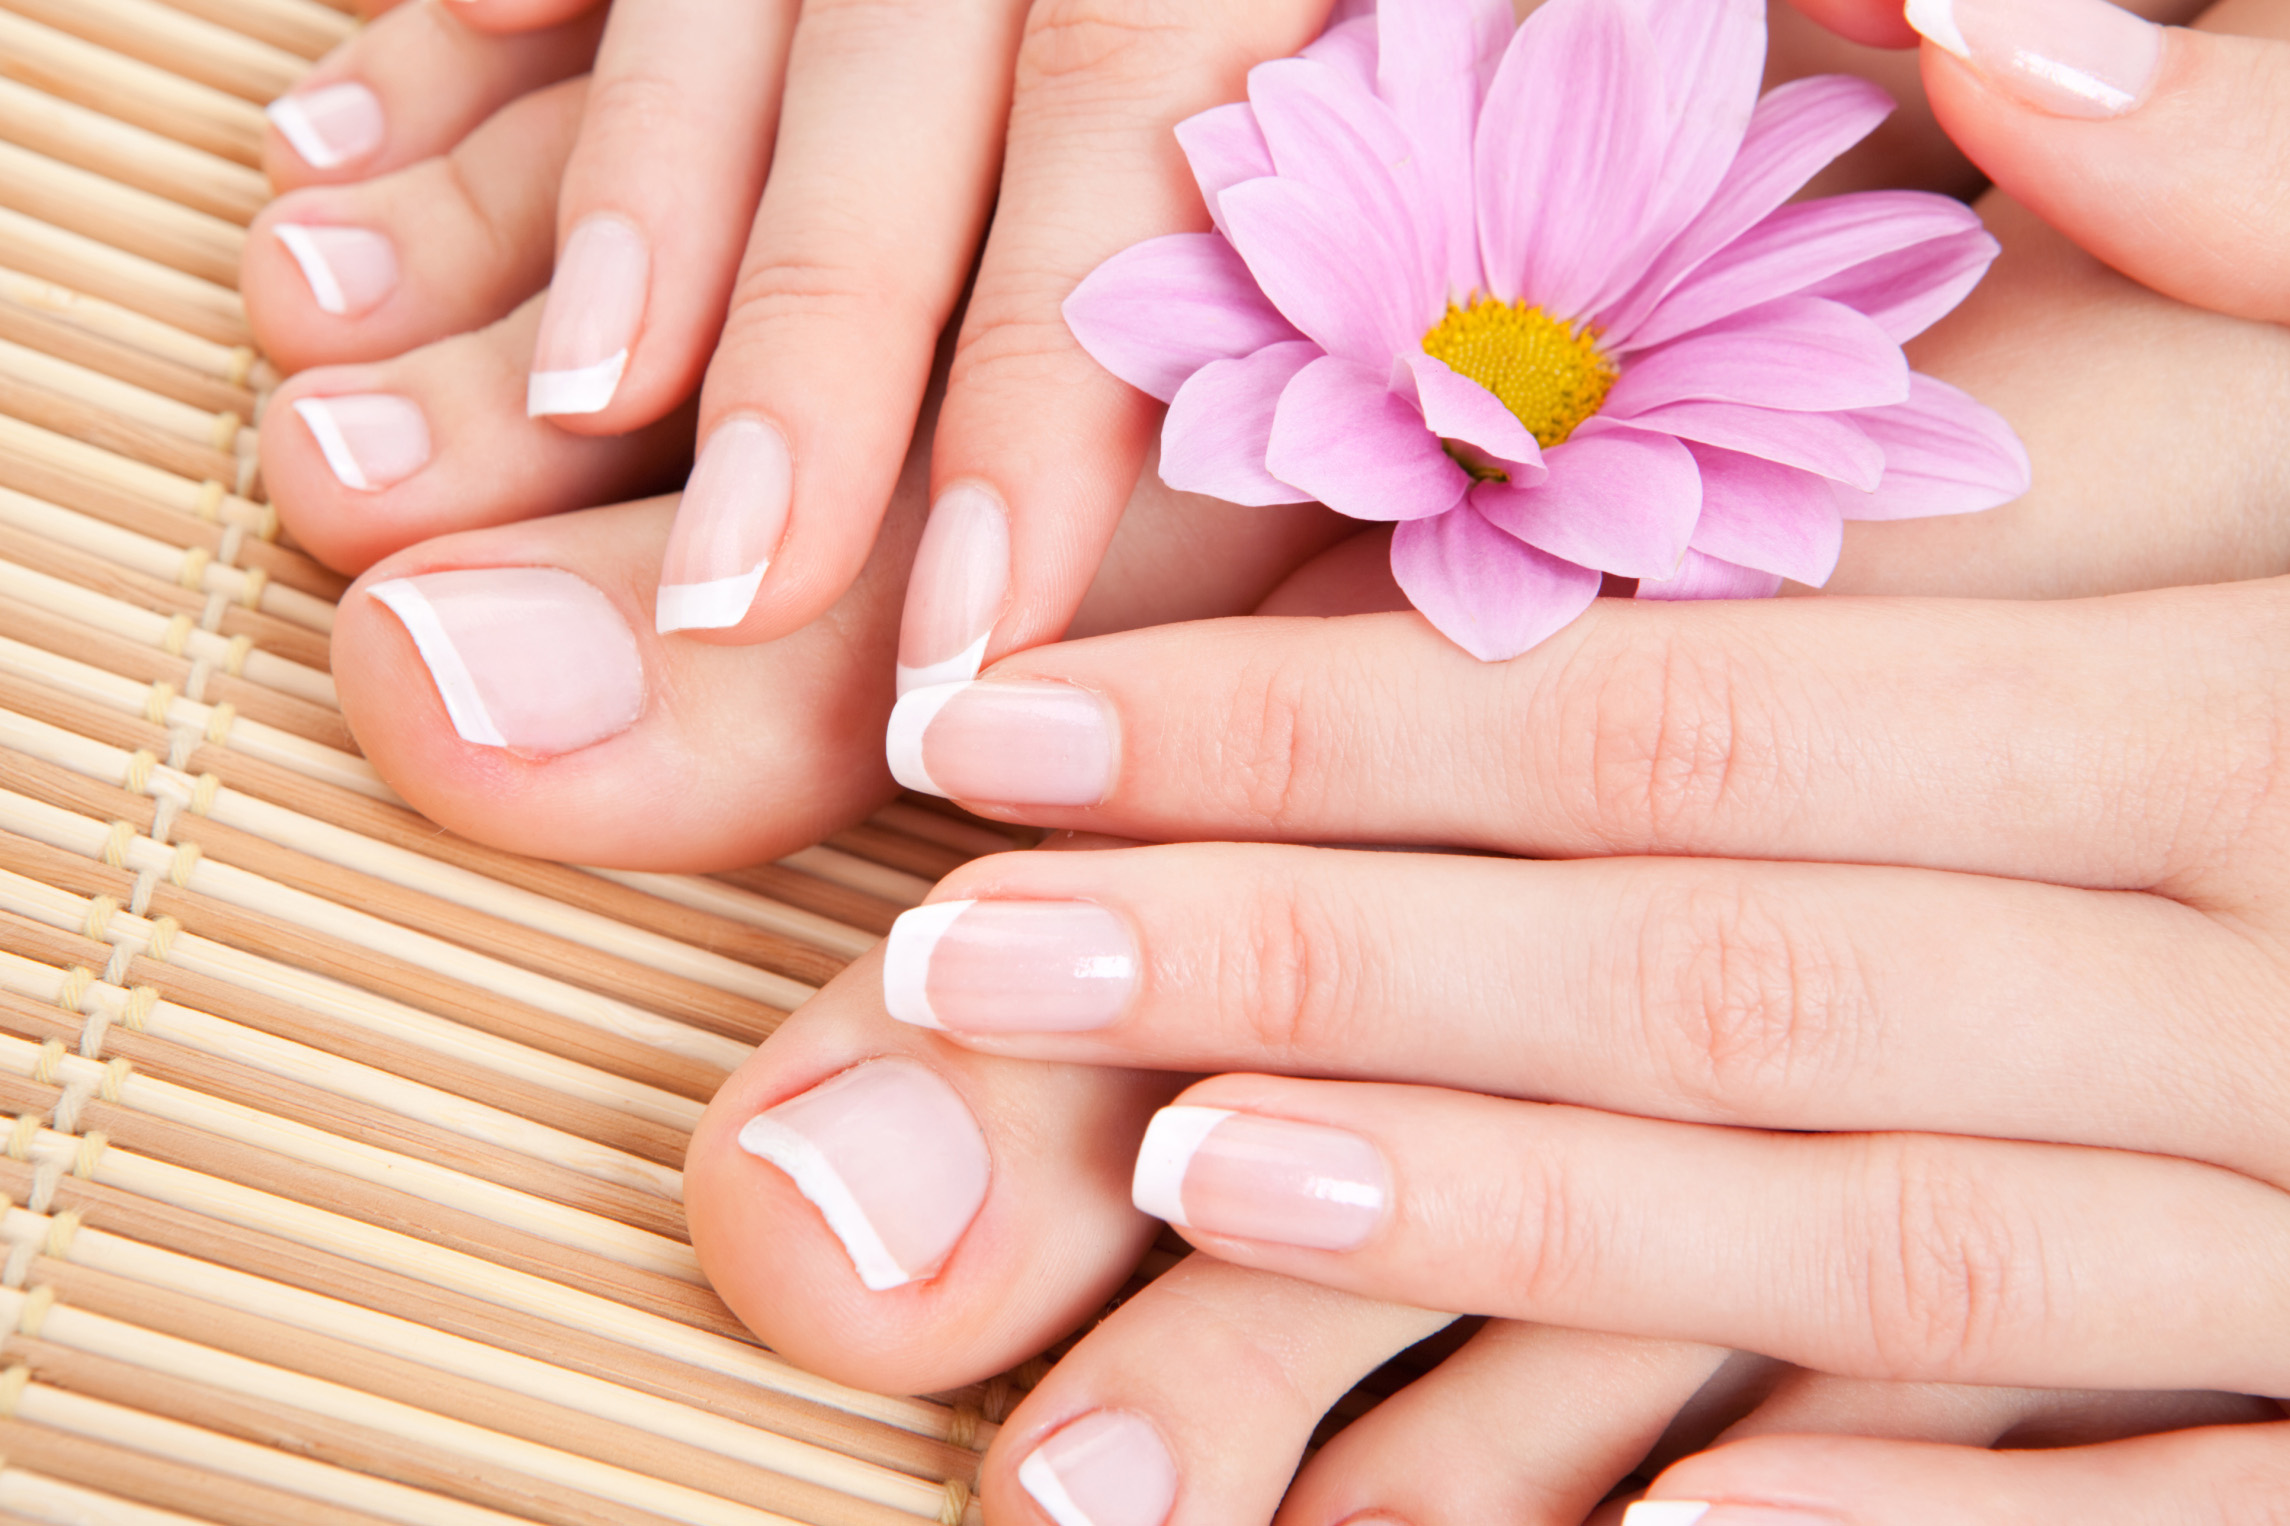 Nail Care – Appearance Day Spa in Poughkeepsie, New York – Offering ...